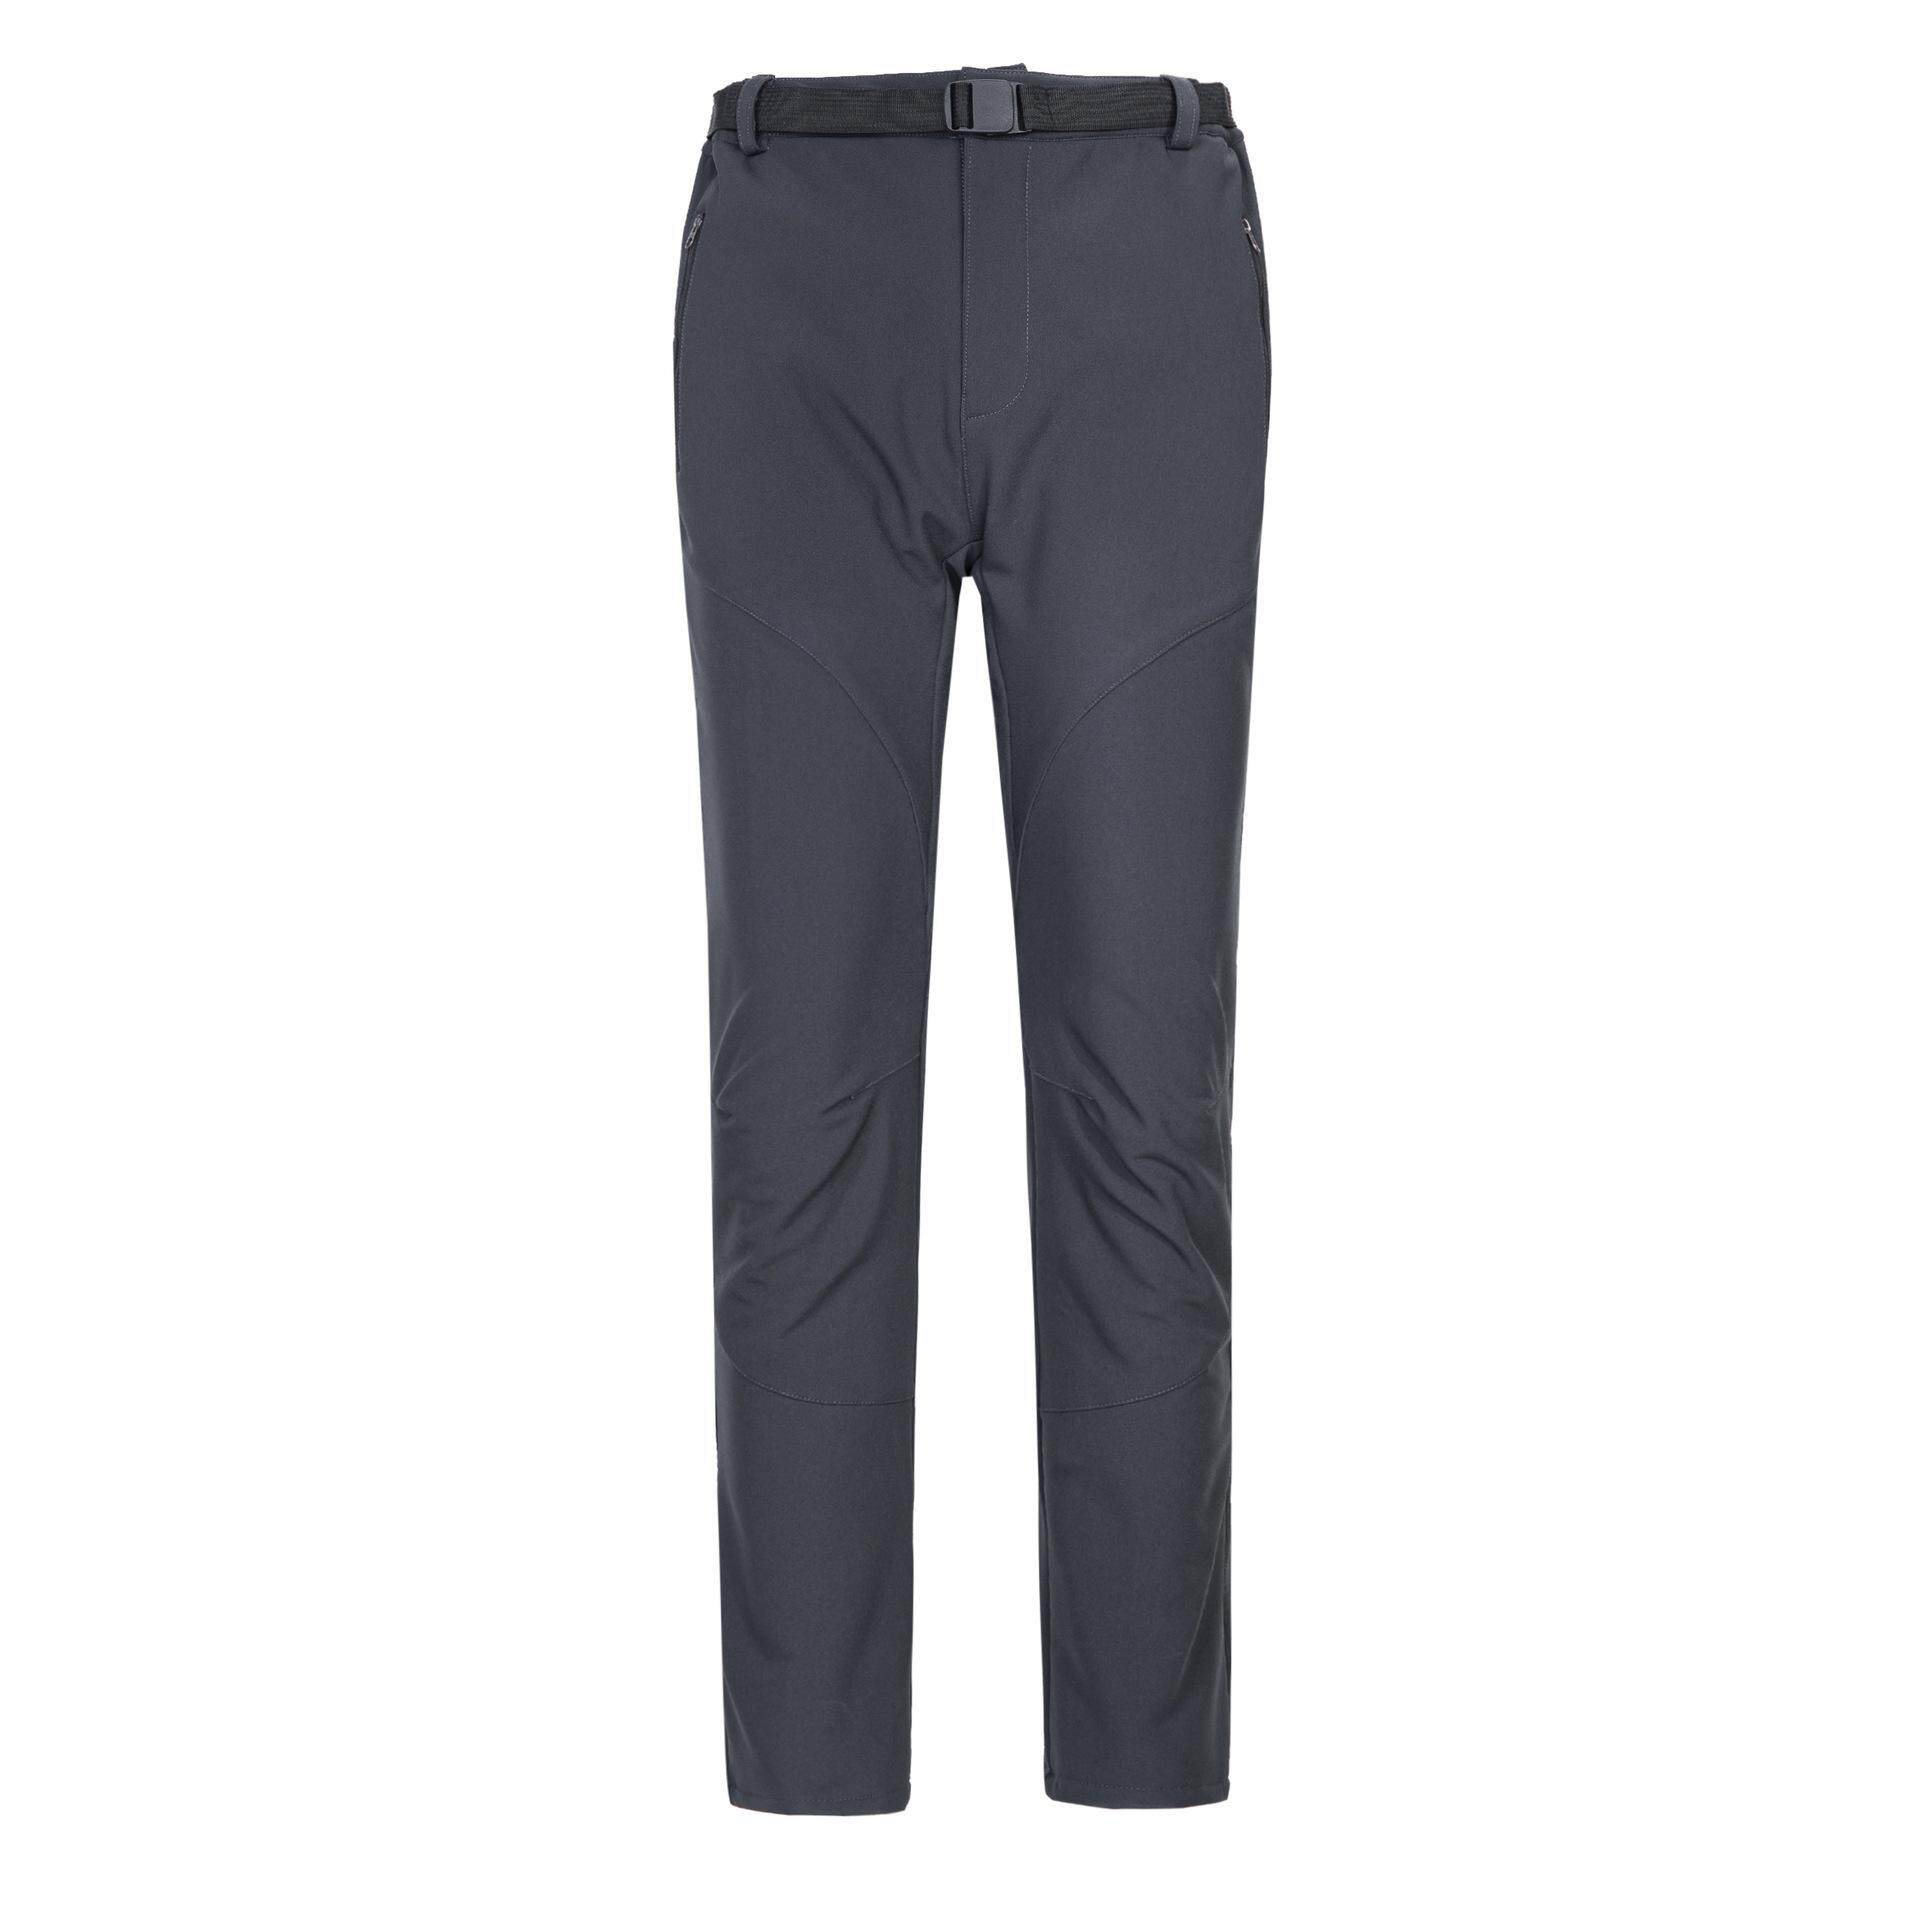 【YumingOnline-Outdoor】Soft Shell Women's Front Pants Outdoor Waterproof Cashmere Sport Mountaineering Pants Pants Logo